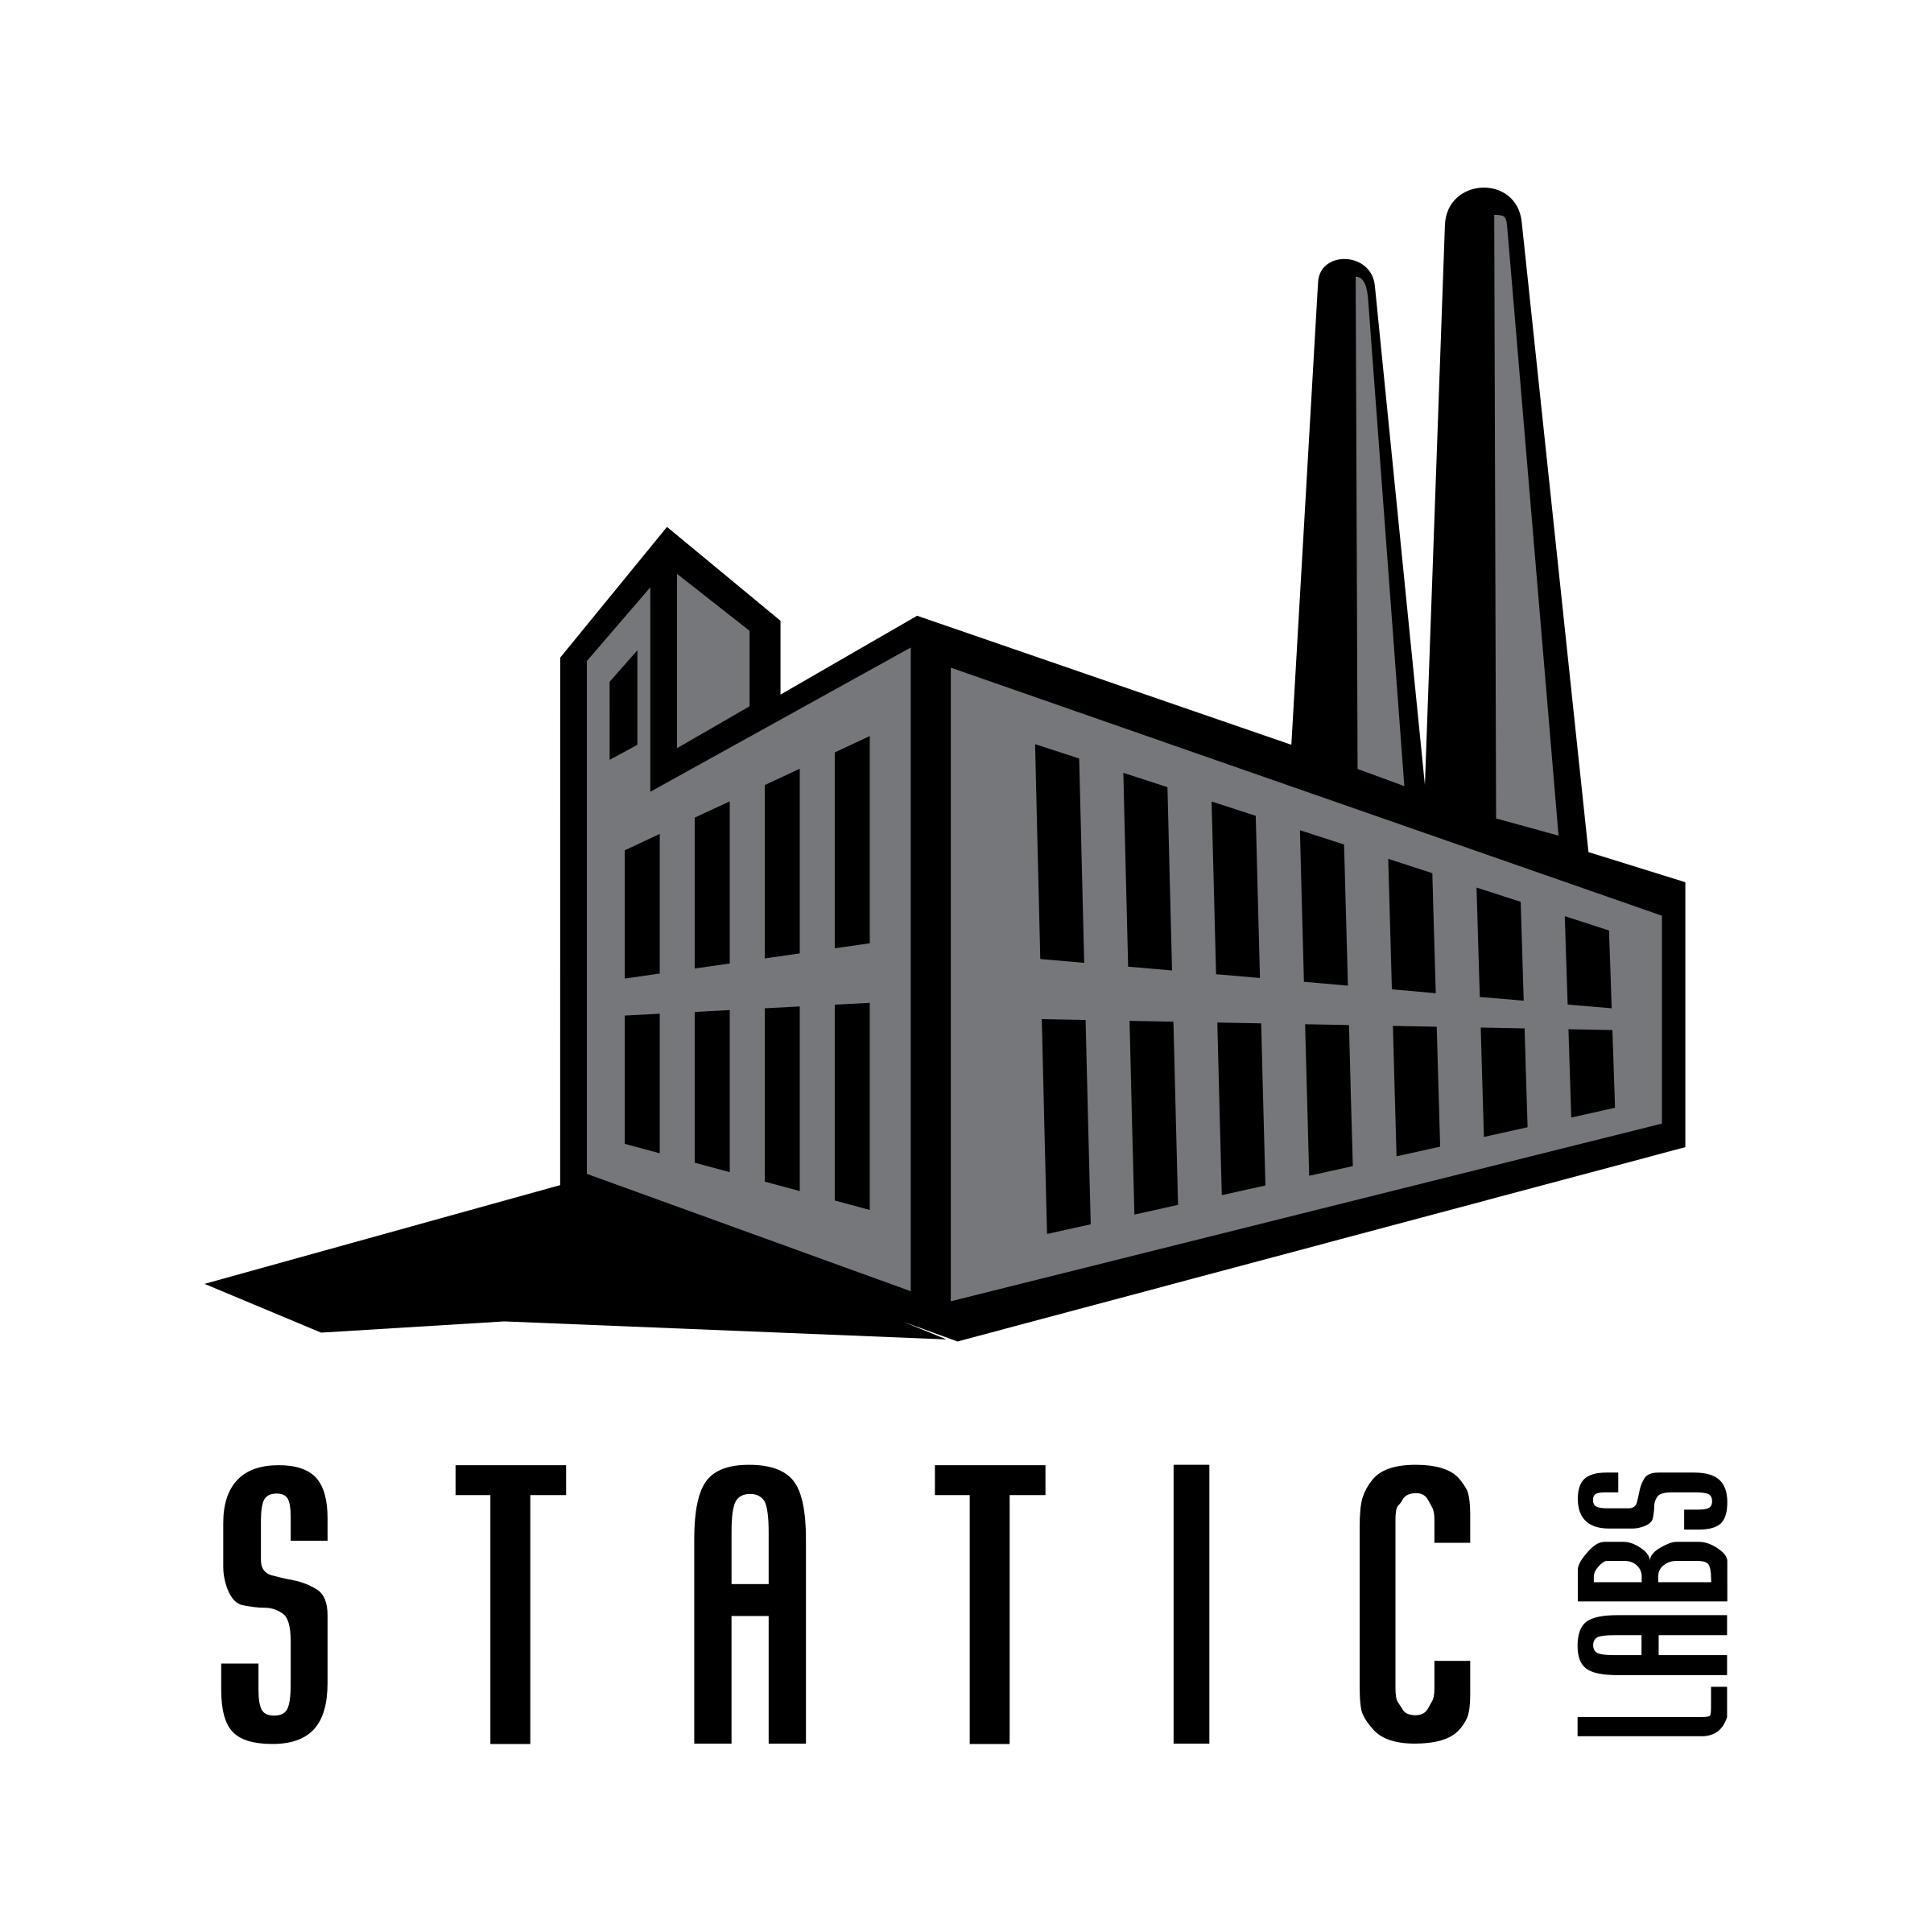 Static vector black and white. Labs logo png transparent